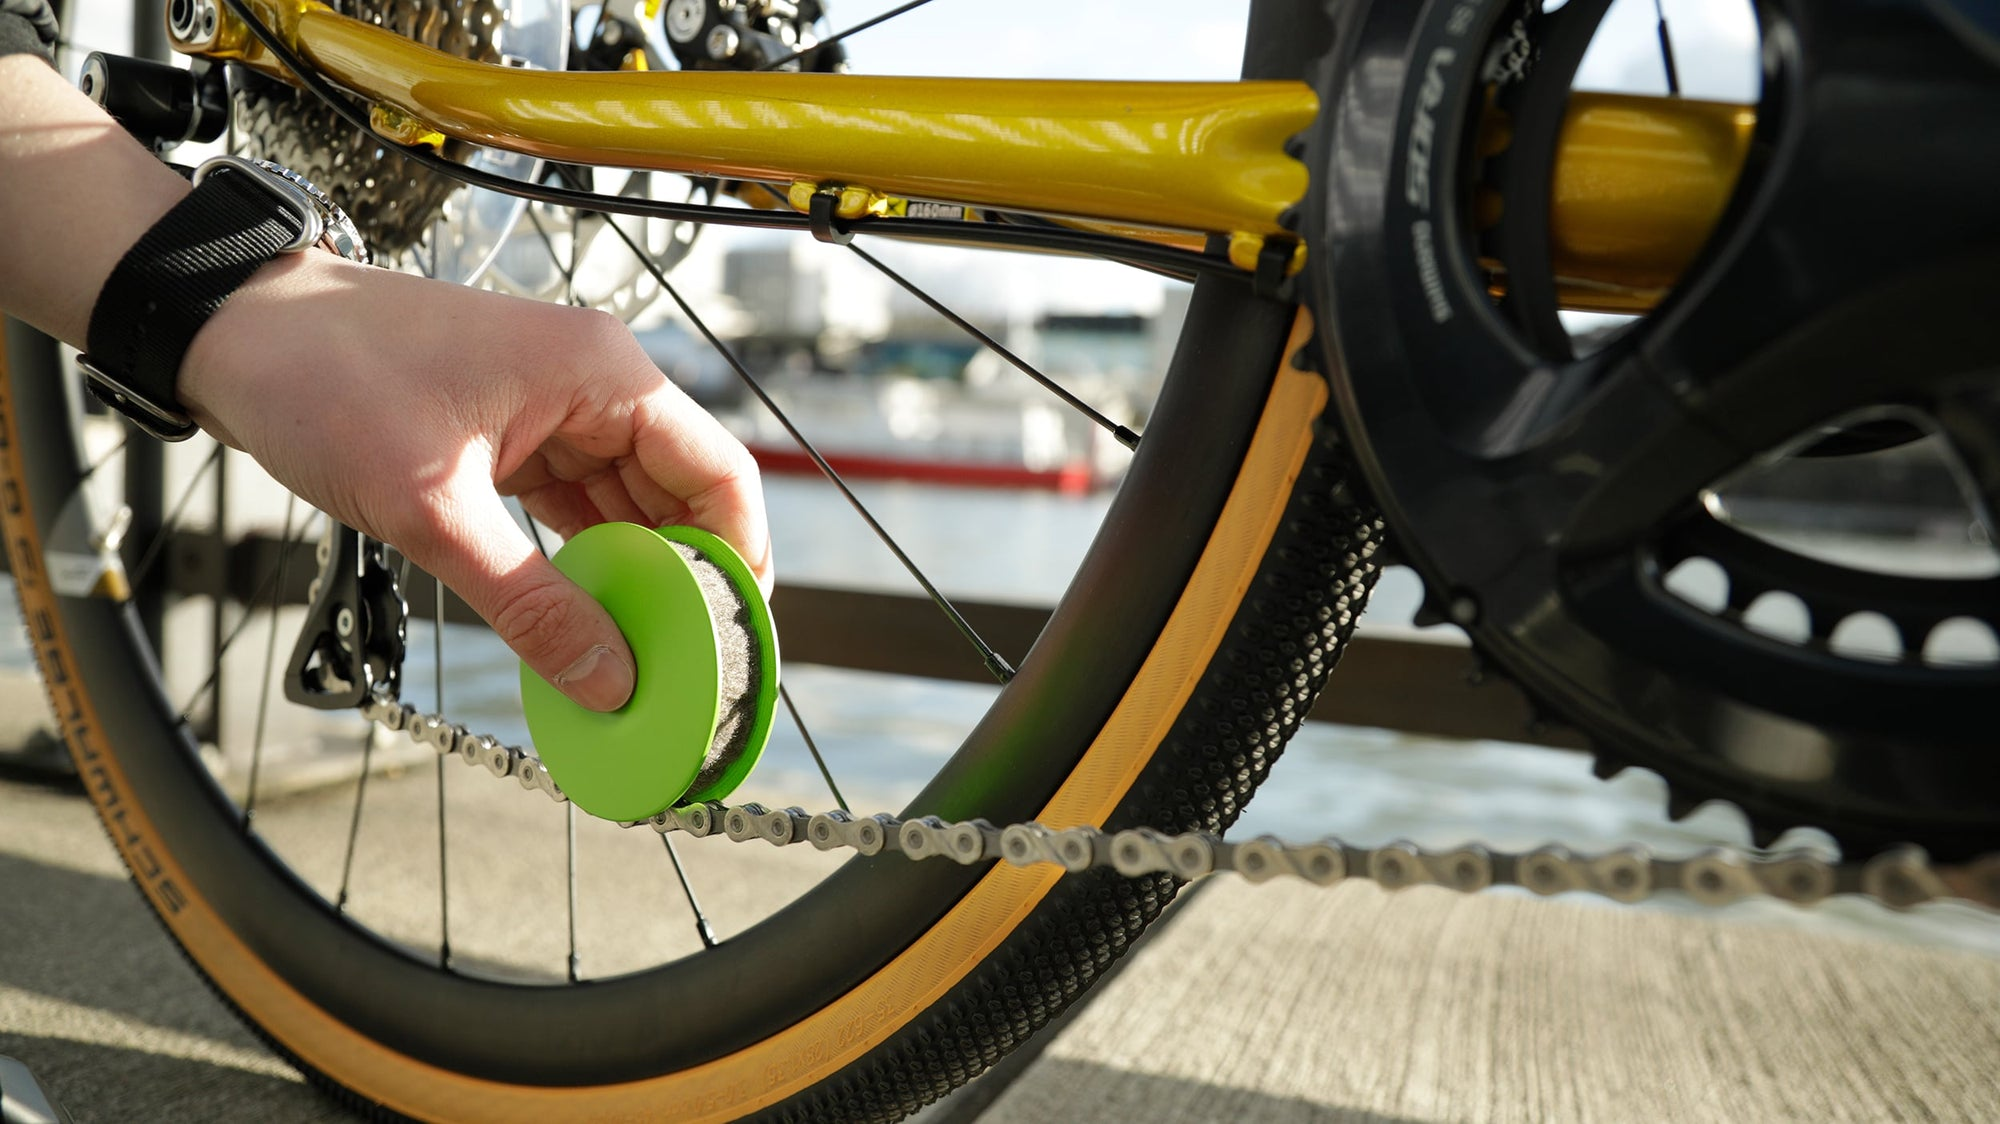 GREEN DISC - eco-friendly bike chain maintenance in seconds